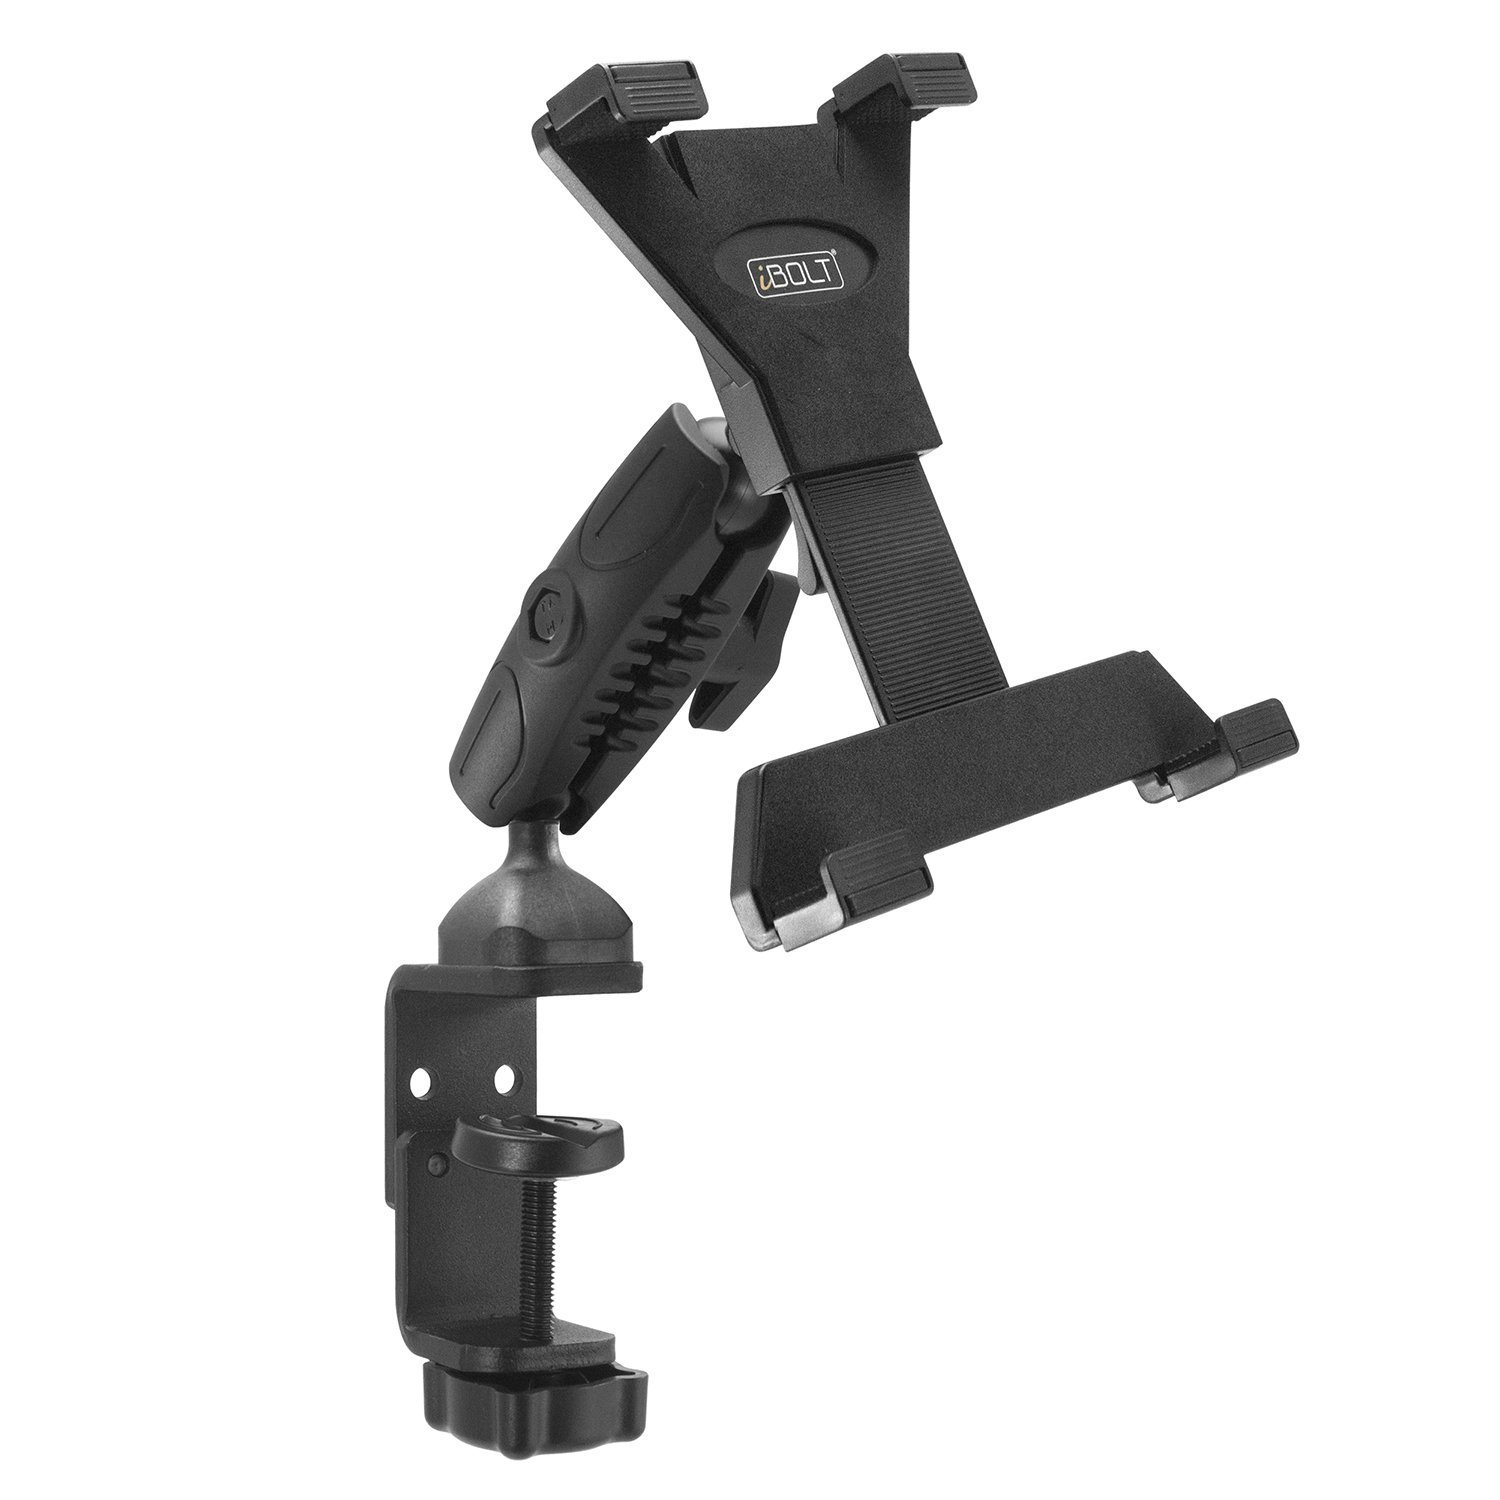 iBOLT TabDock Bizmount Clamp- Heavy Duty Dual-Ball C-Clamp mount for all 7'' - 10'' tablets (iPad, Samsung Galaxy Tab, etc.) For Desks, Tables, Wheelchairs, Carts: Great For Homes, Schools, Offices by iBOLT (Image #3)